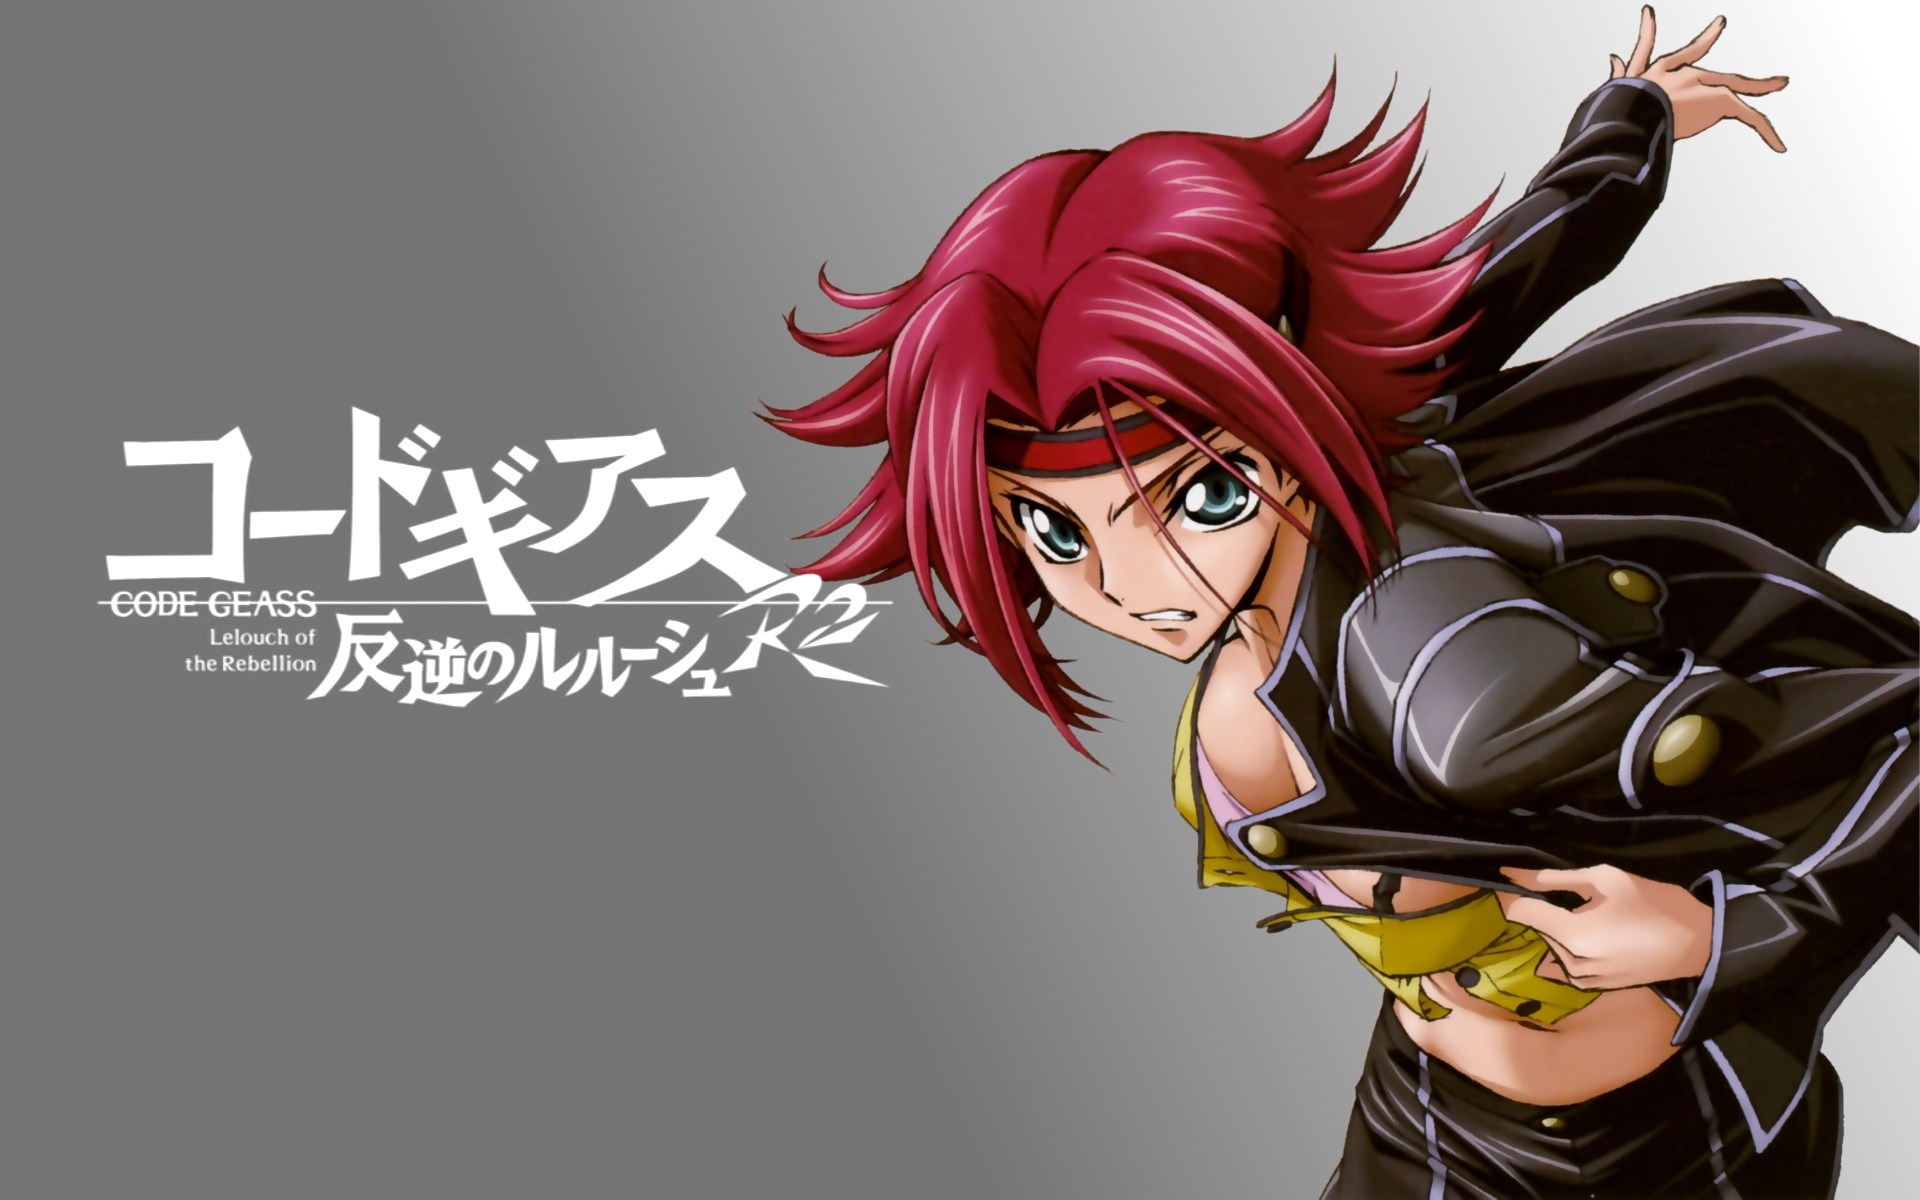 blue_eyes code_geass kallen_stadtfeld red_hair short_hair